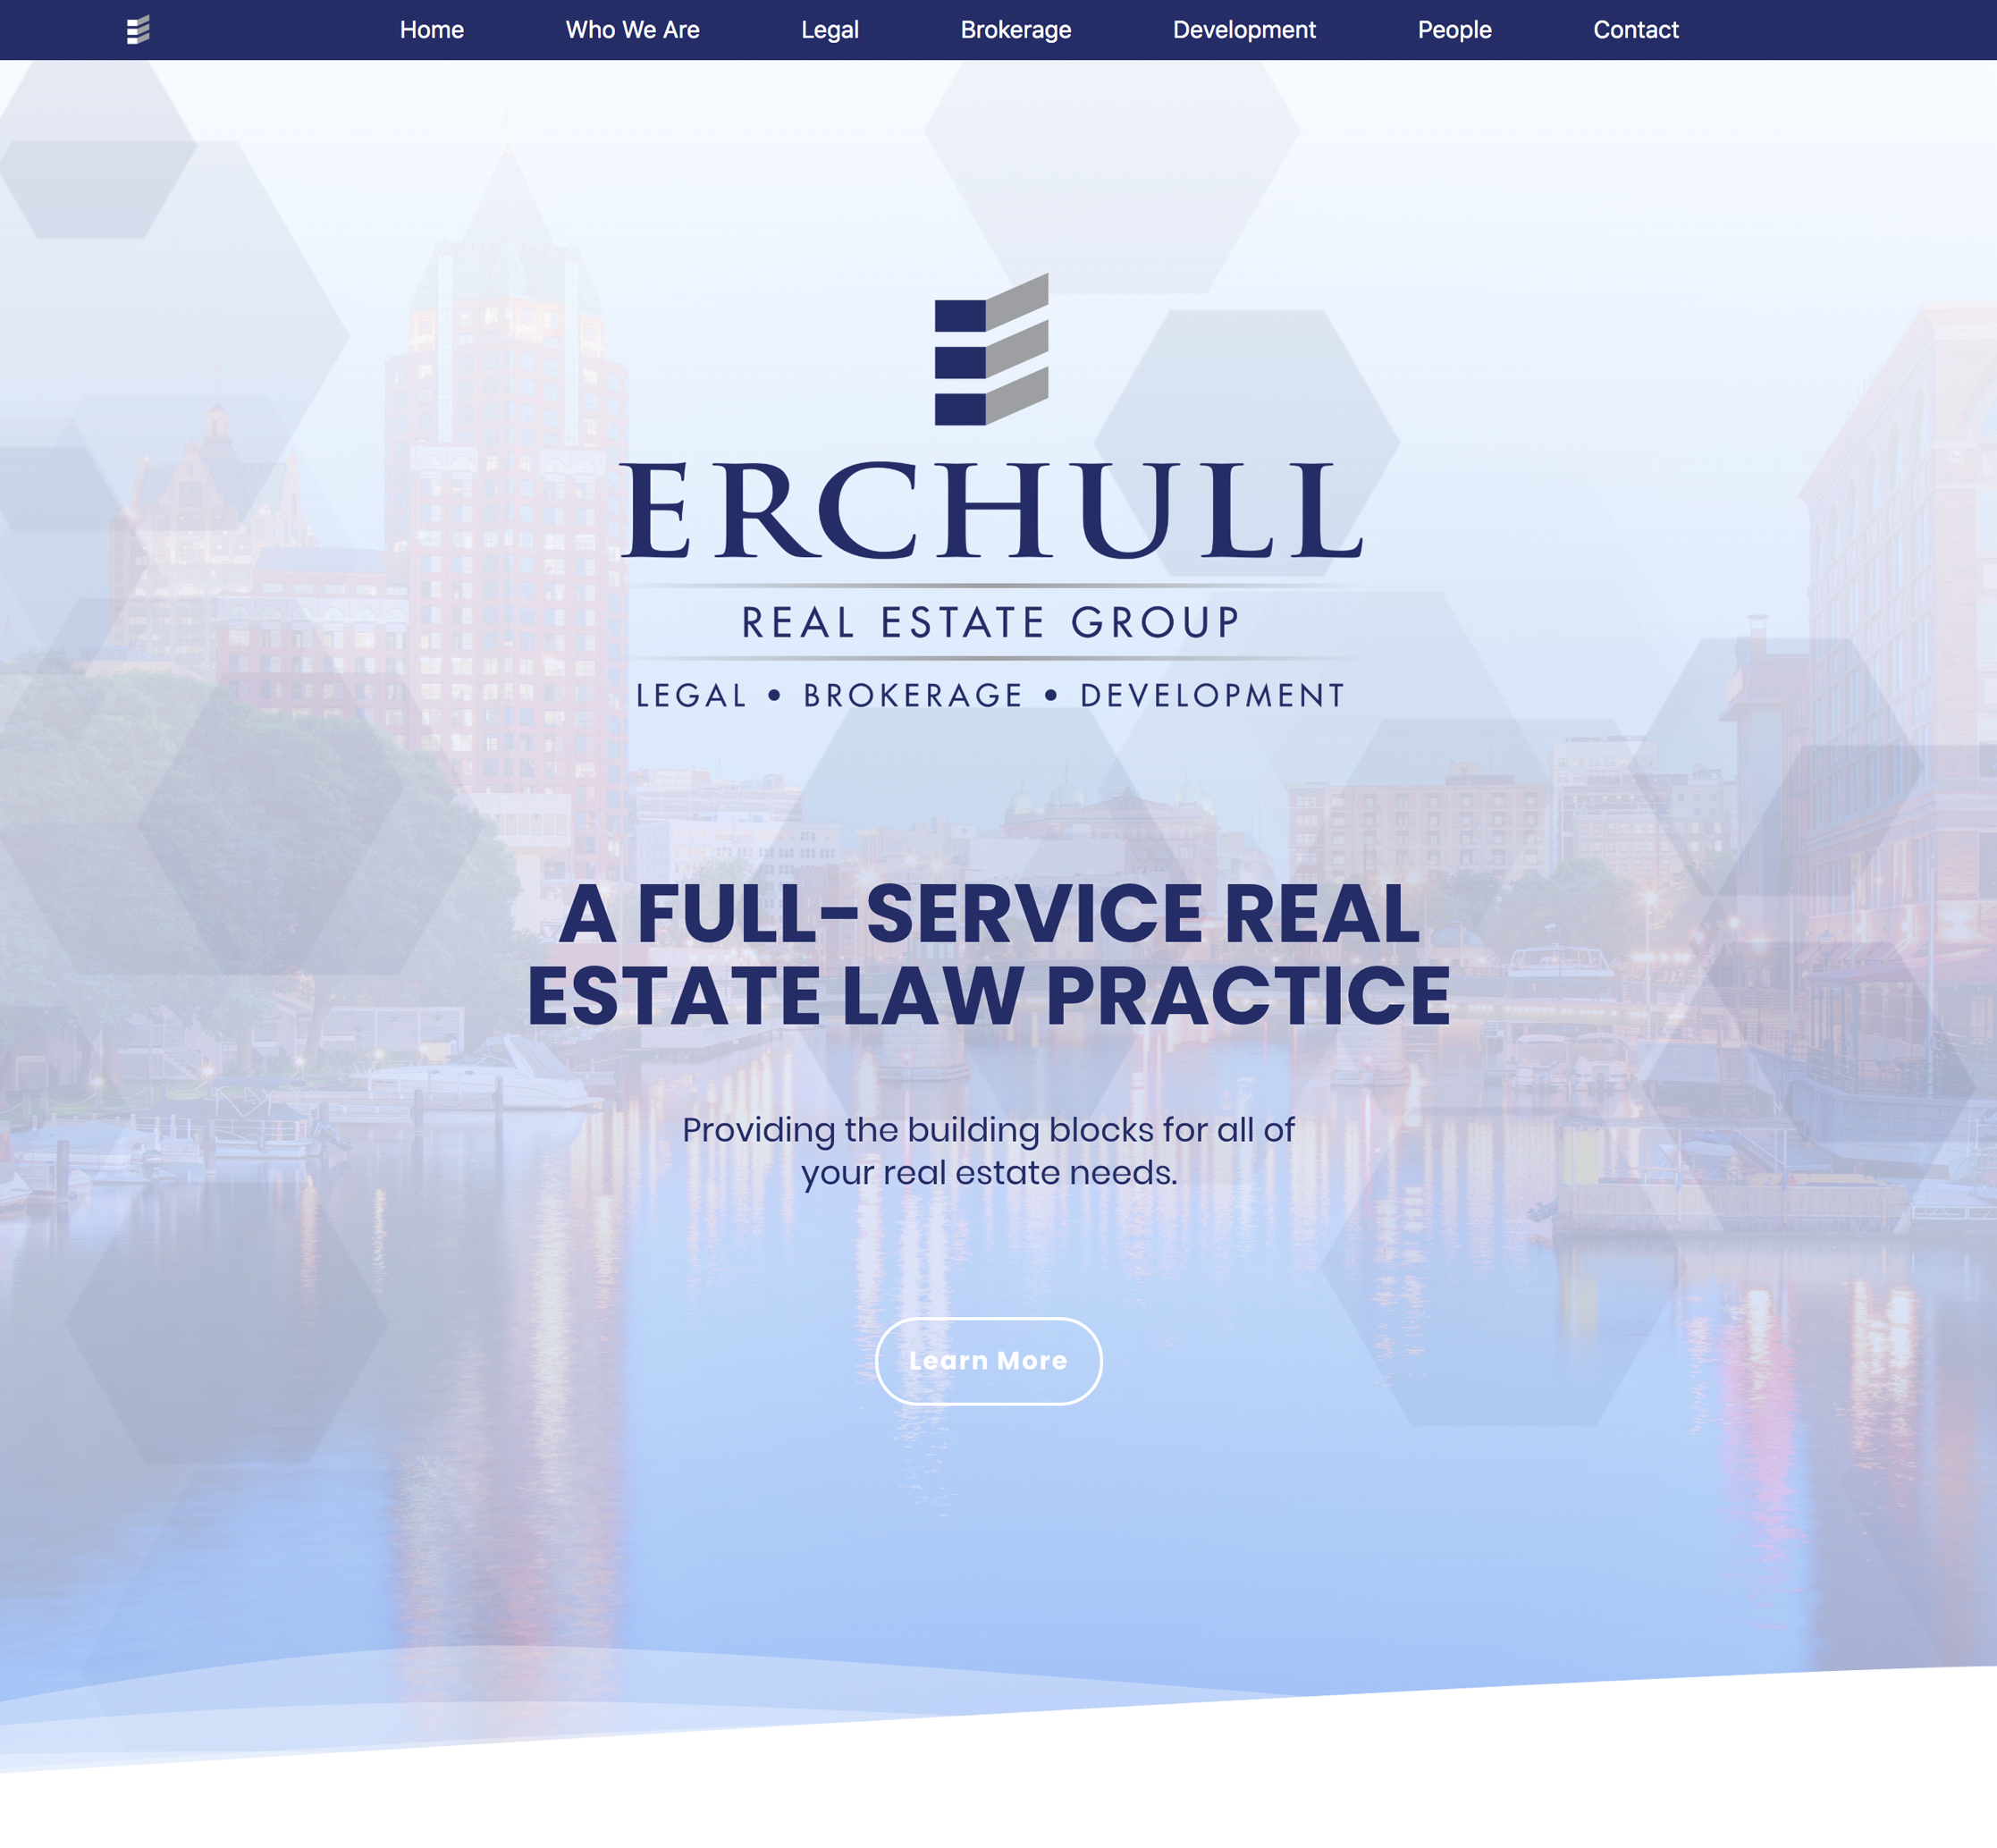 Erchull Real Estate Group